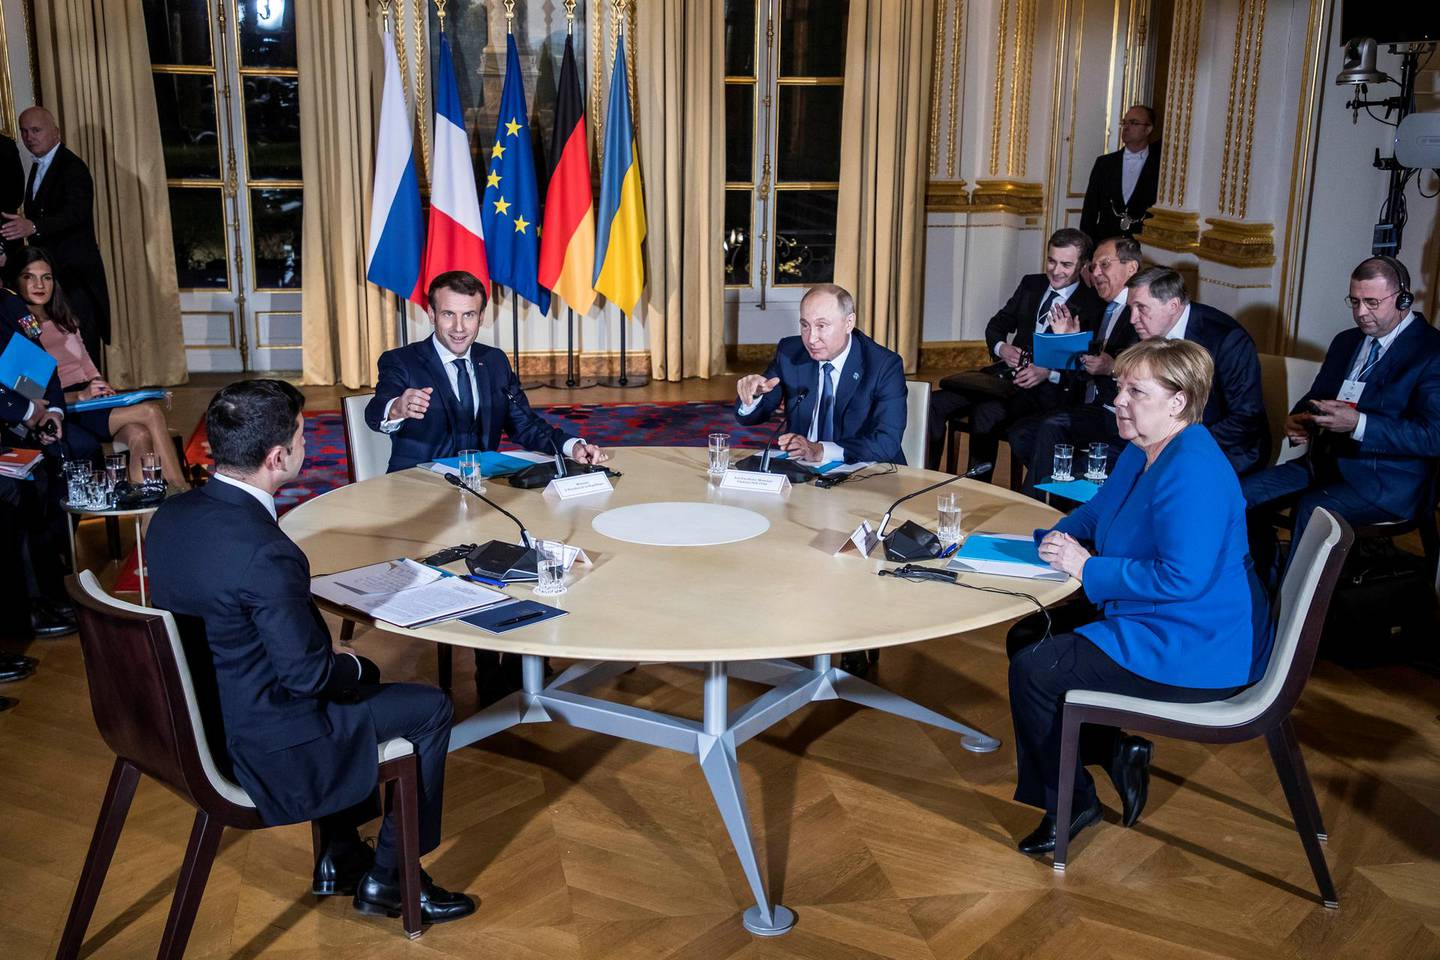 Ukrainian President Volodymyr Zelenskiy, German Chancellor Angela Merkel, French President Emmanuel Macron and Russian President Vladimir Putin attend a working session during a summit on the conflict in Ukraine at the Elysee Palace in Paris, France December 9, 2019. Christophe Petit Tesson/Pool via REUTERS